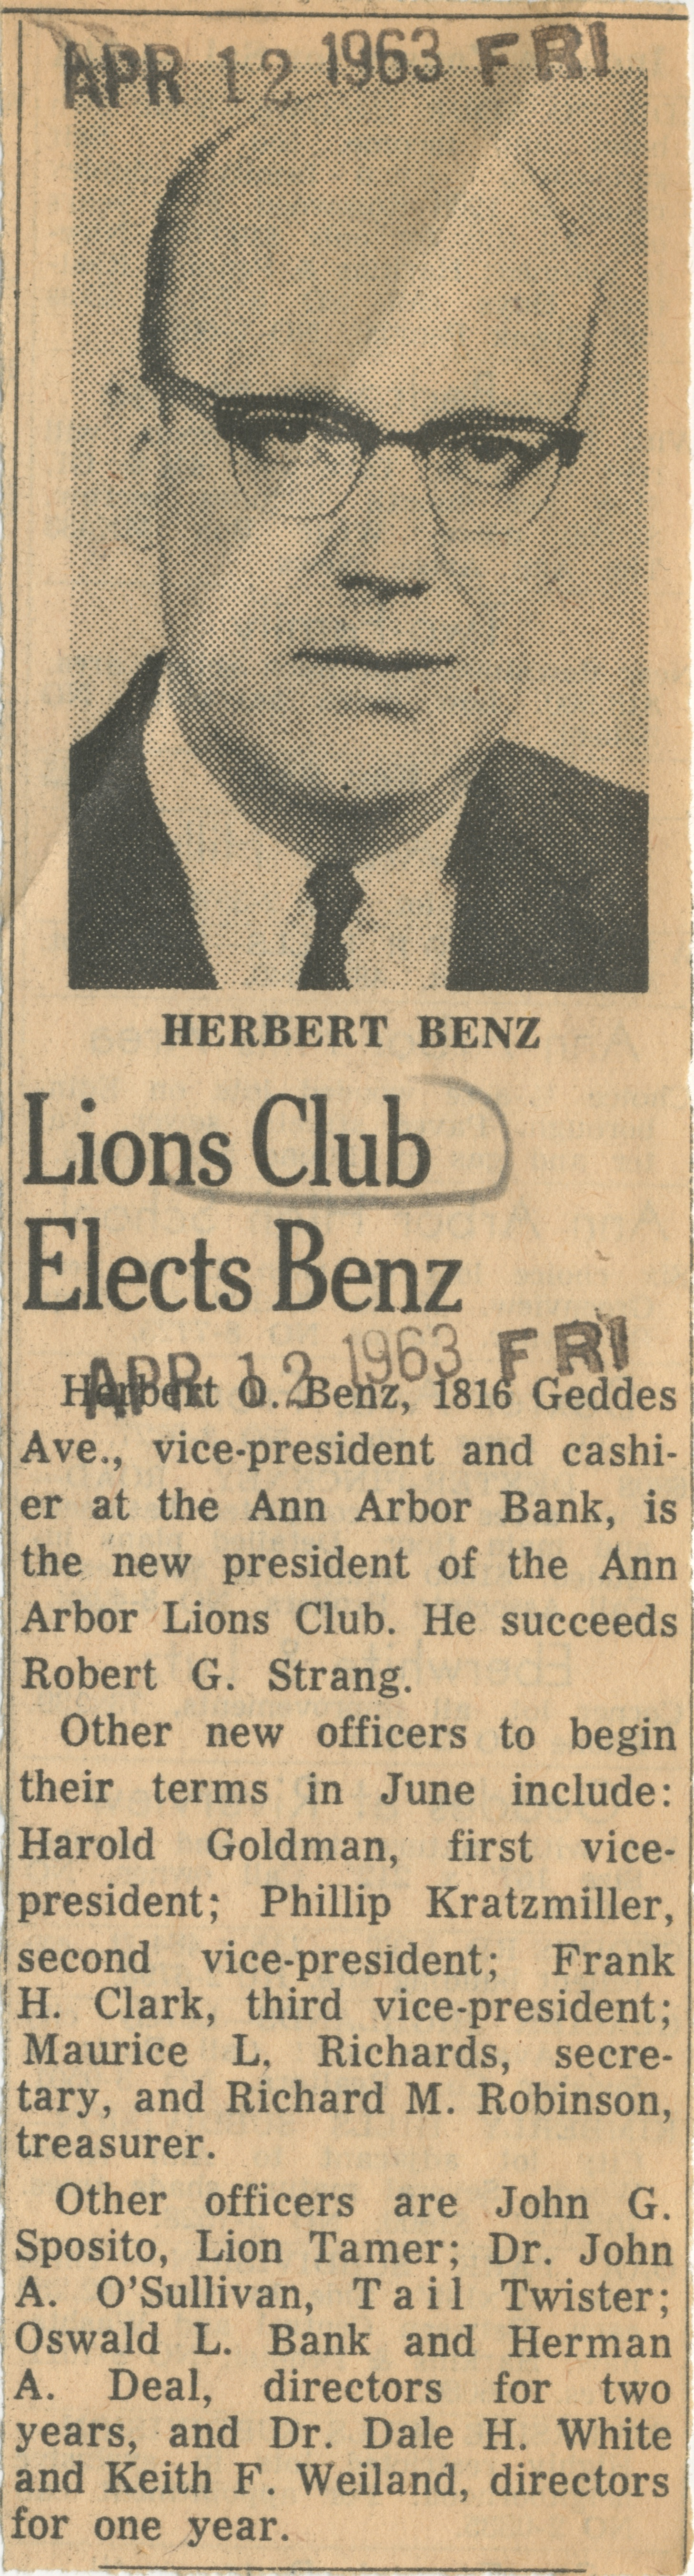 Lions Club Elects Benz image